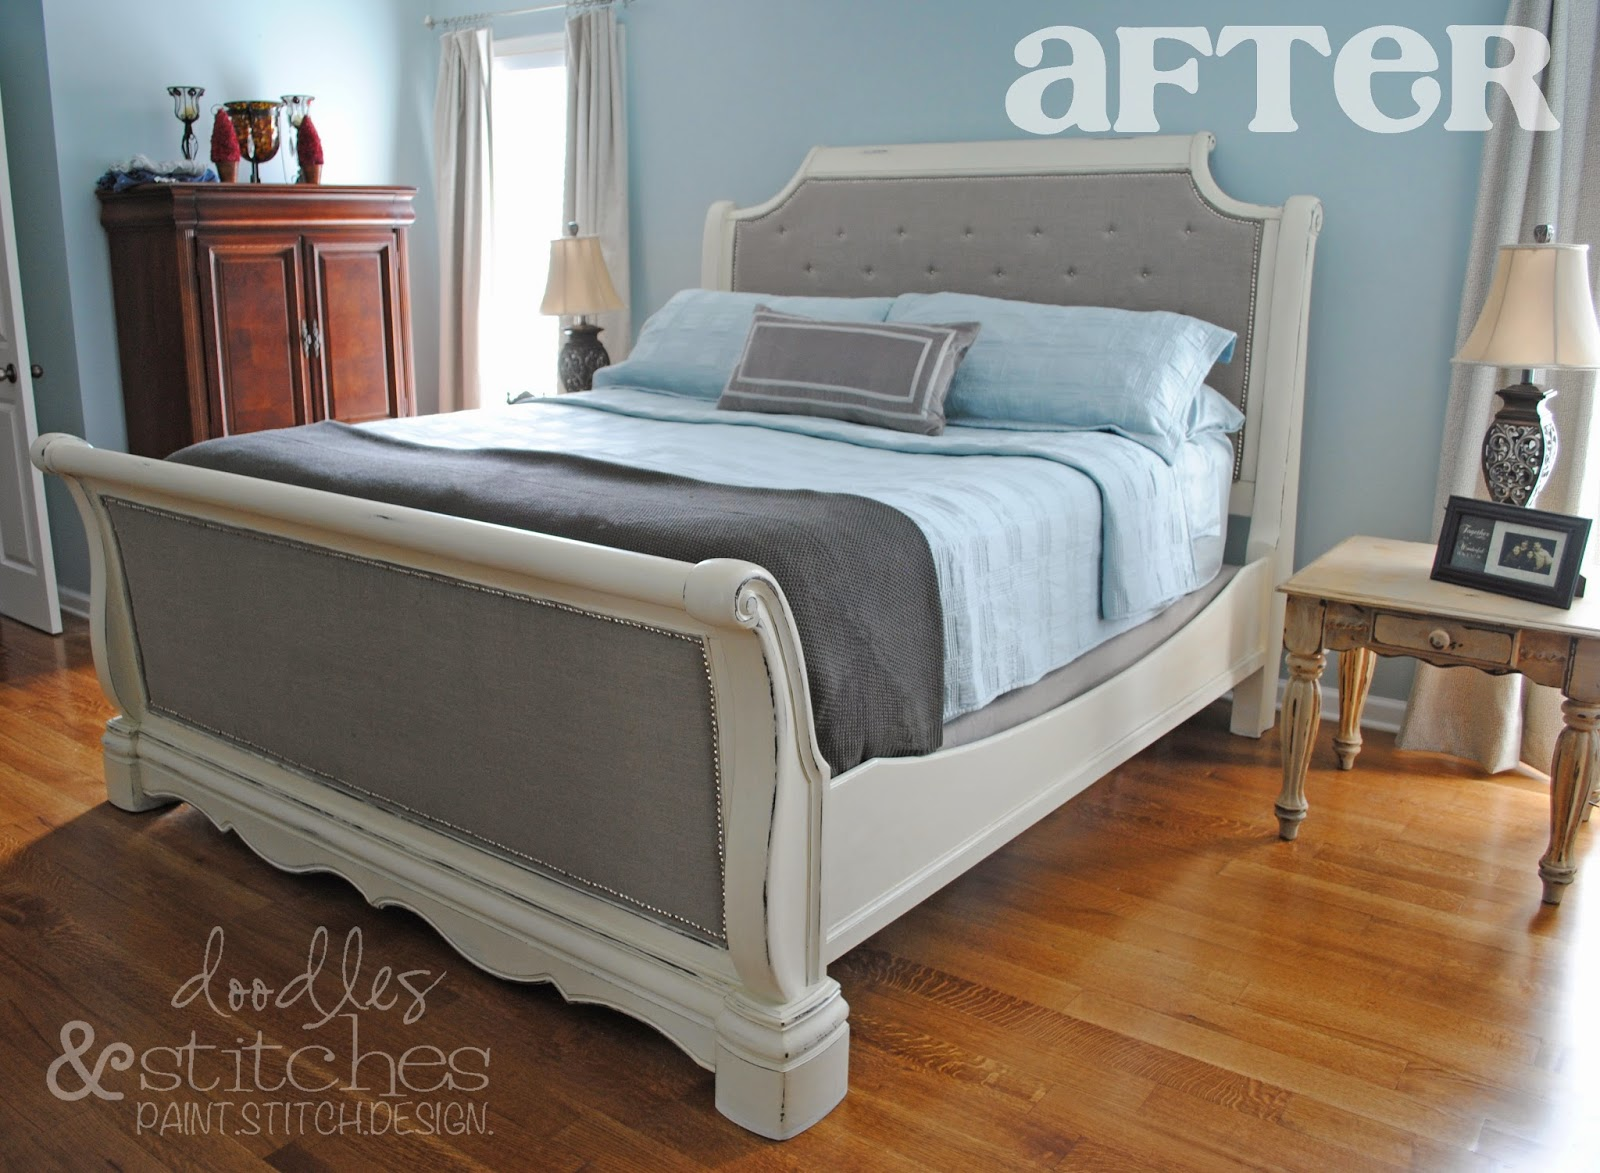 "Doodles & Stitches: ""Faux"" Tufted Bed Tutorial"